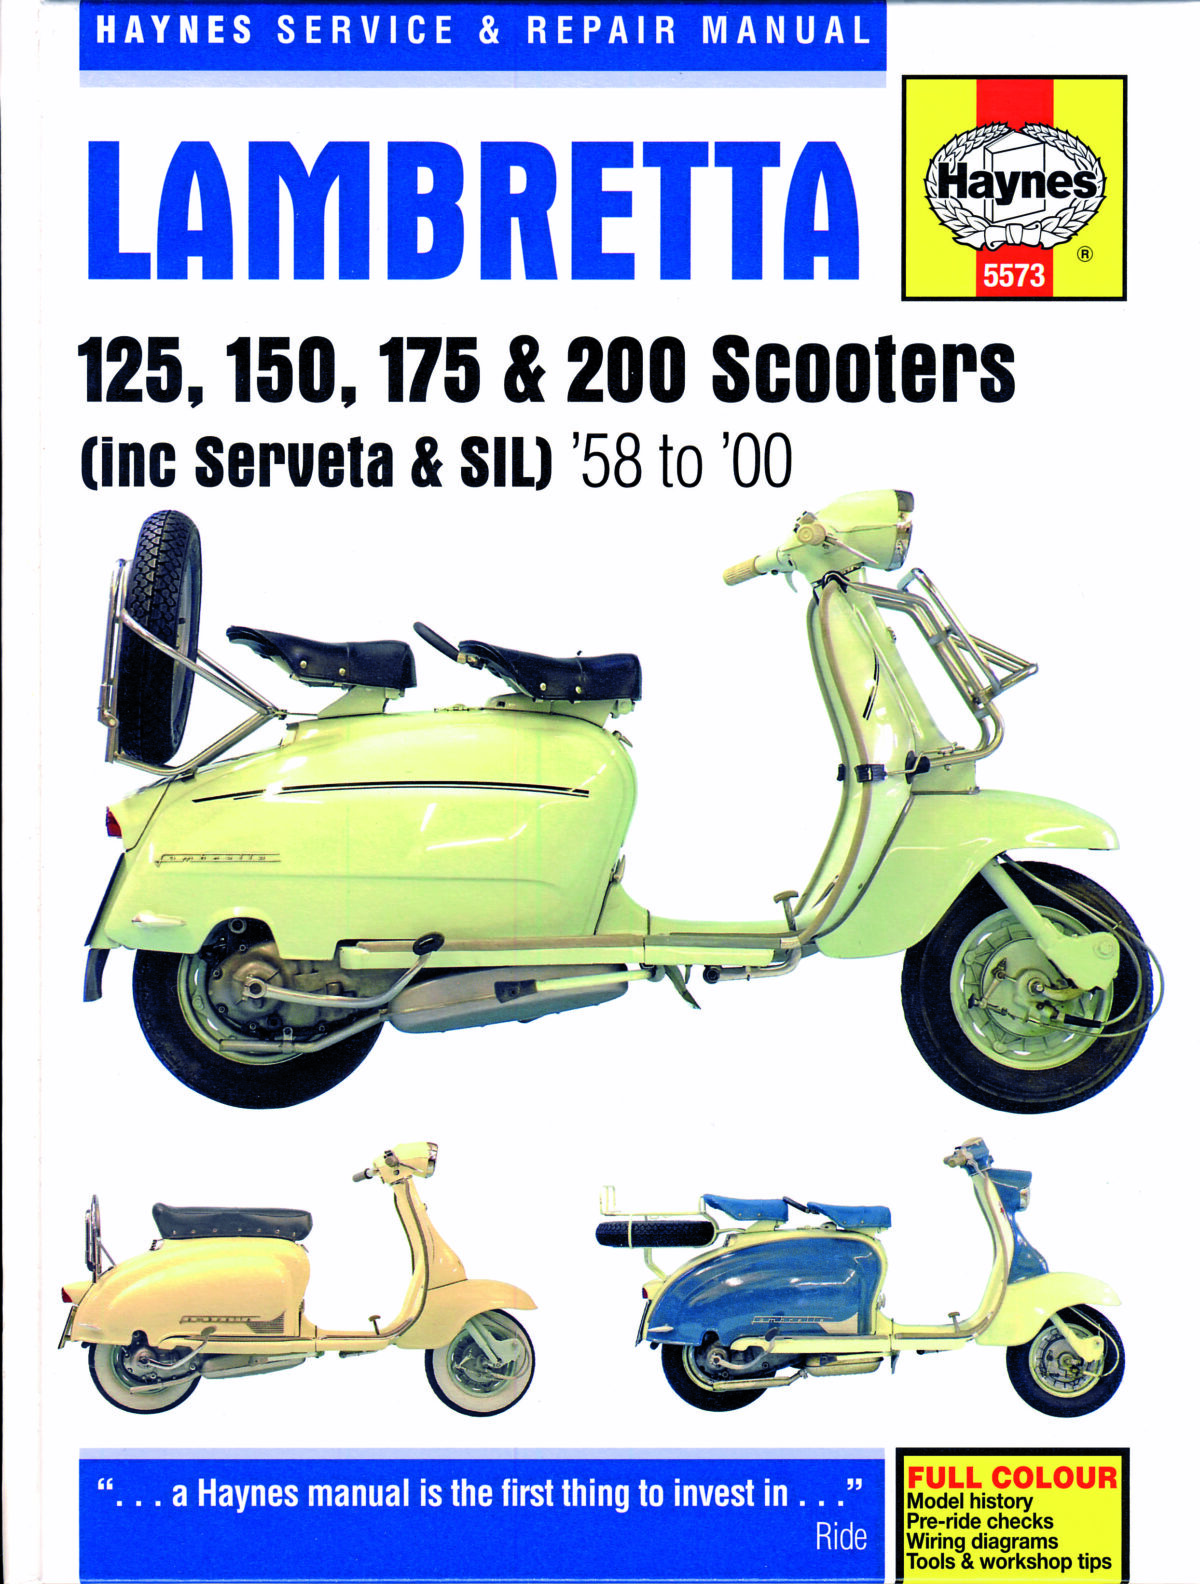 Haynes Service And Repair Manual For Lambretta Scooters Scootering Wiring Diagram Vespa Px 125 009 Cover